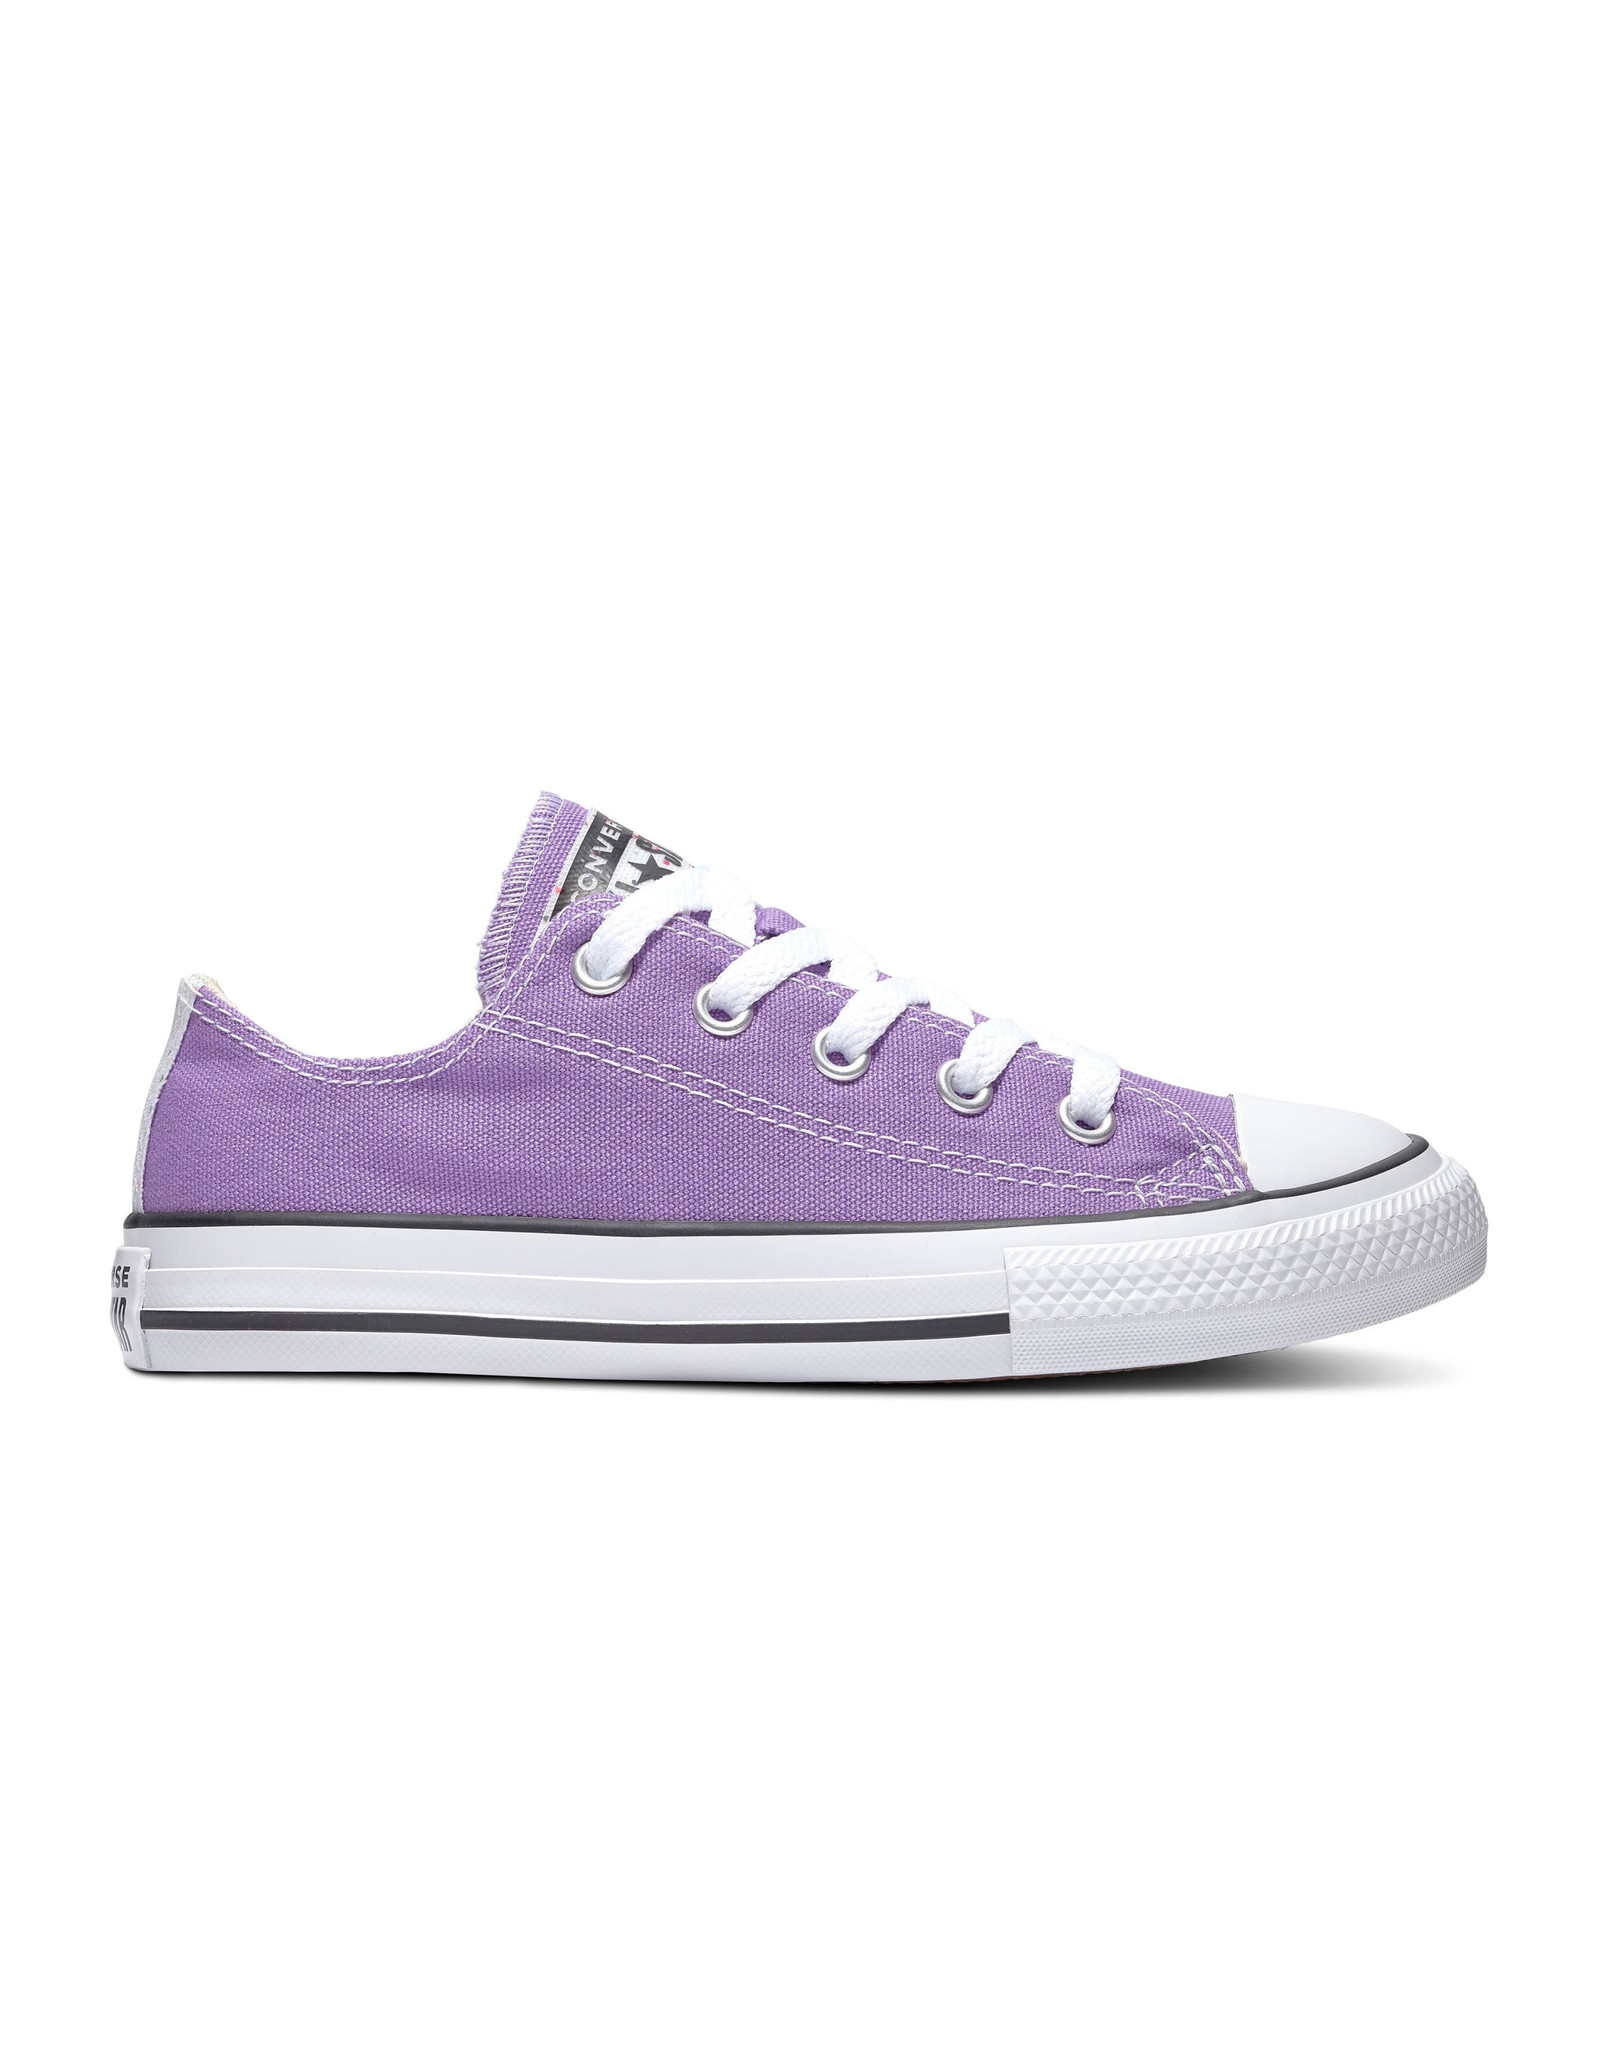 CONVERSE CHUCK TAYLOR ALL STAR OX BRIGHT VIOLET/NATURAL IVORY CZVIO-665123C